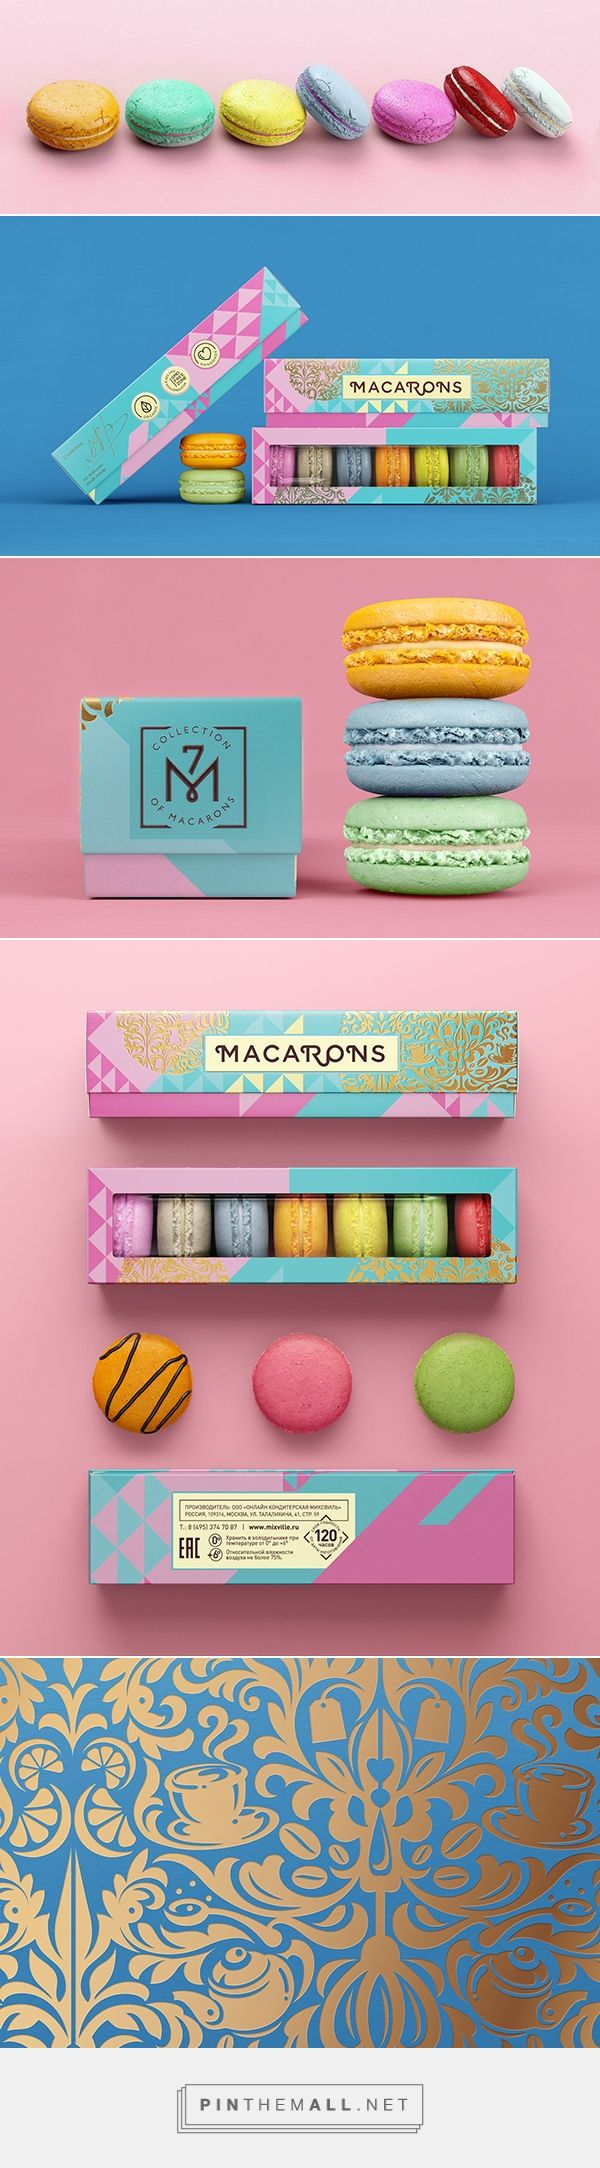 Mixville | Sweets packaging on Behance curated by Packaging Diva PD. Who wants some macaroons now : )